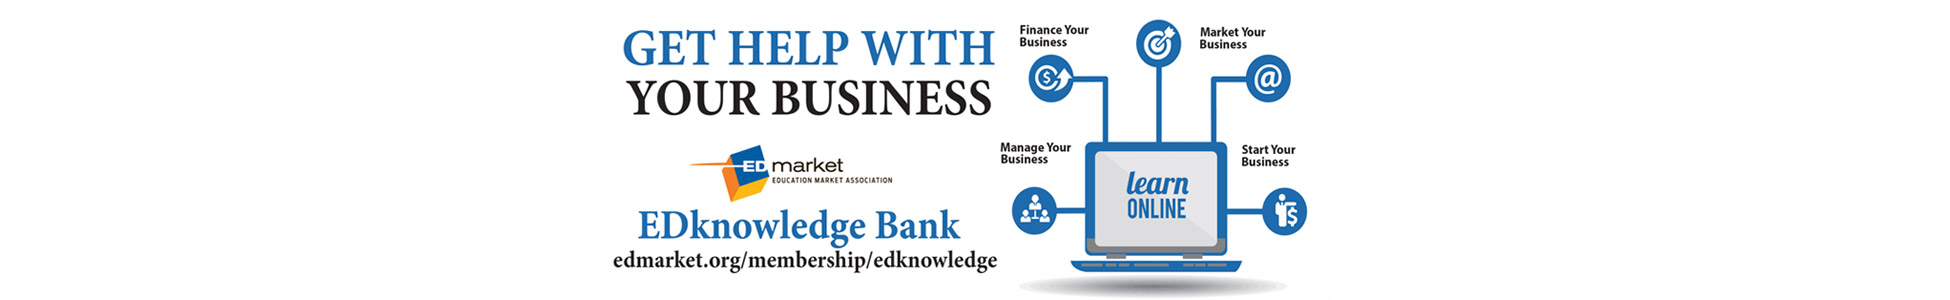 EDmarket EDknowledge Bank